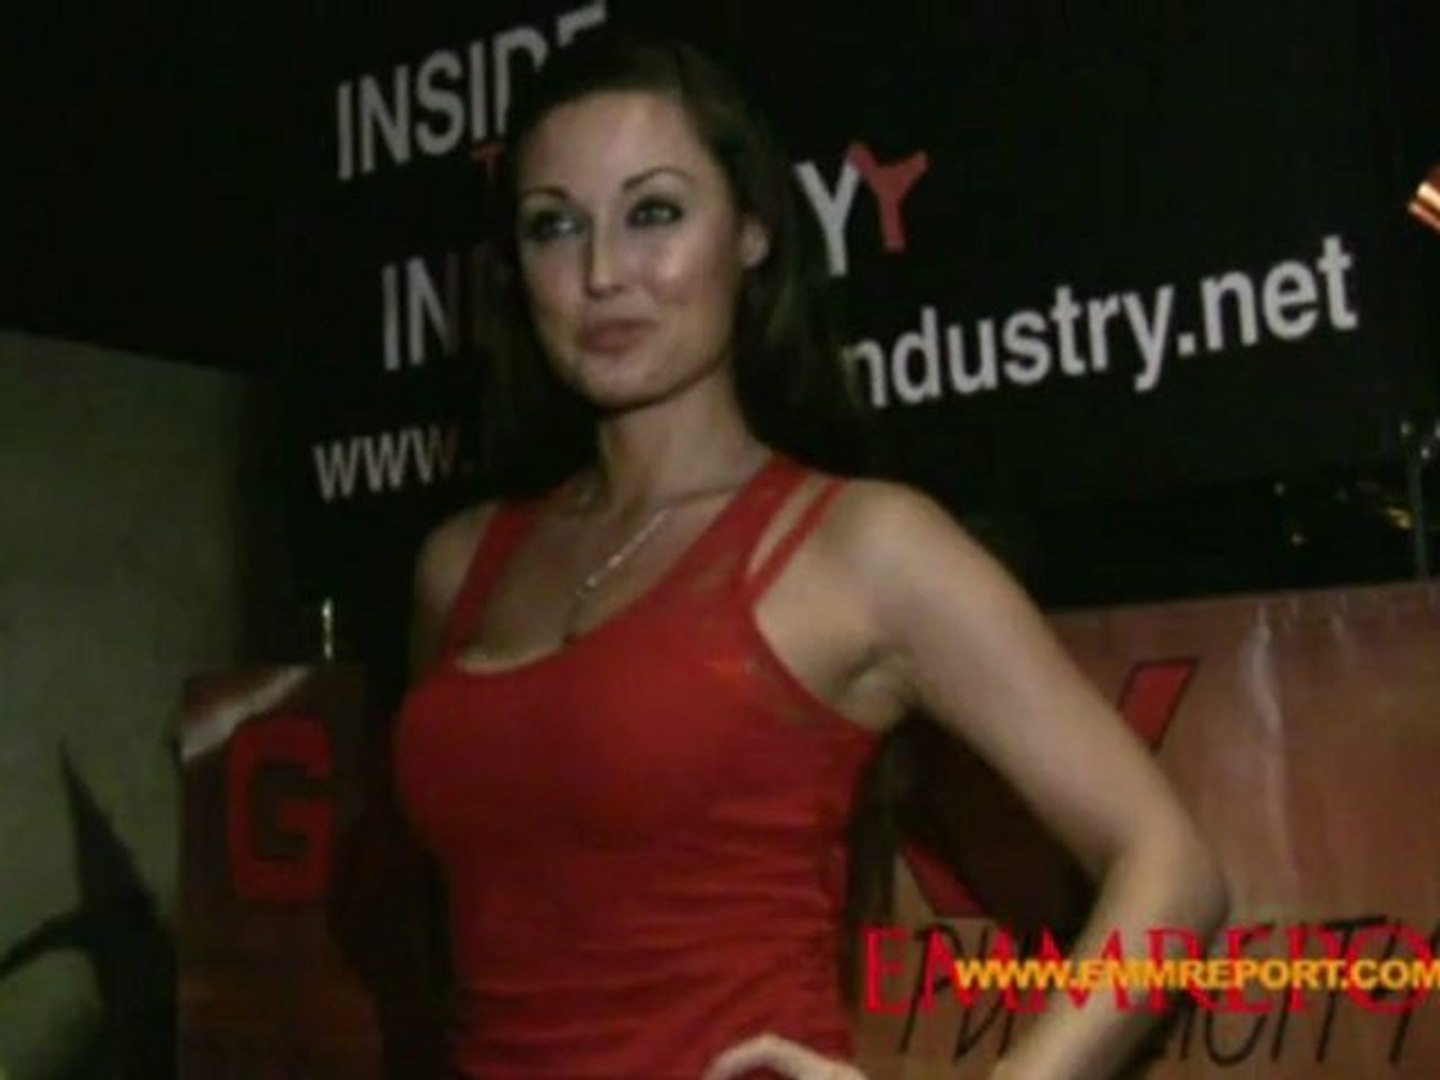 Melissa jacobs pics Melissa Jacobs Interview Video Dailymotion